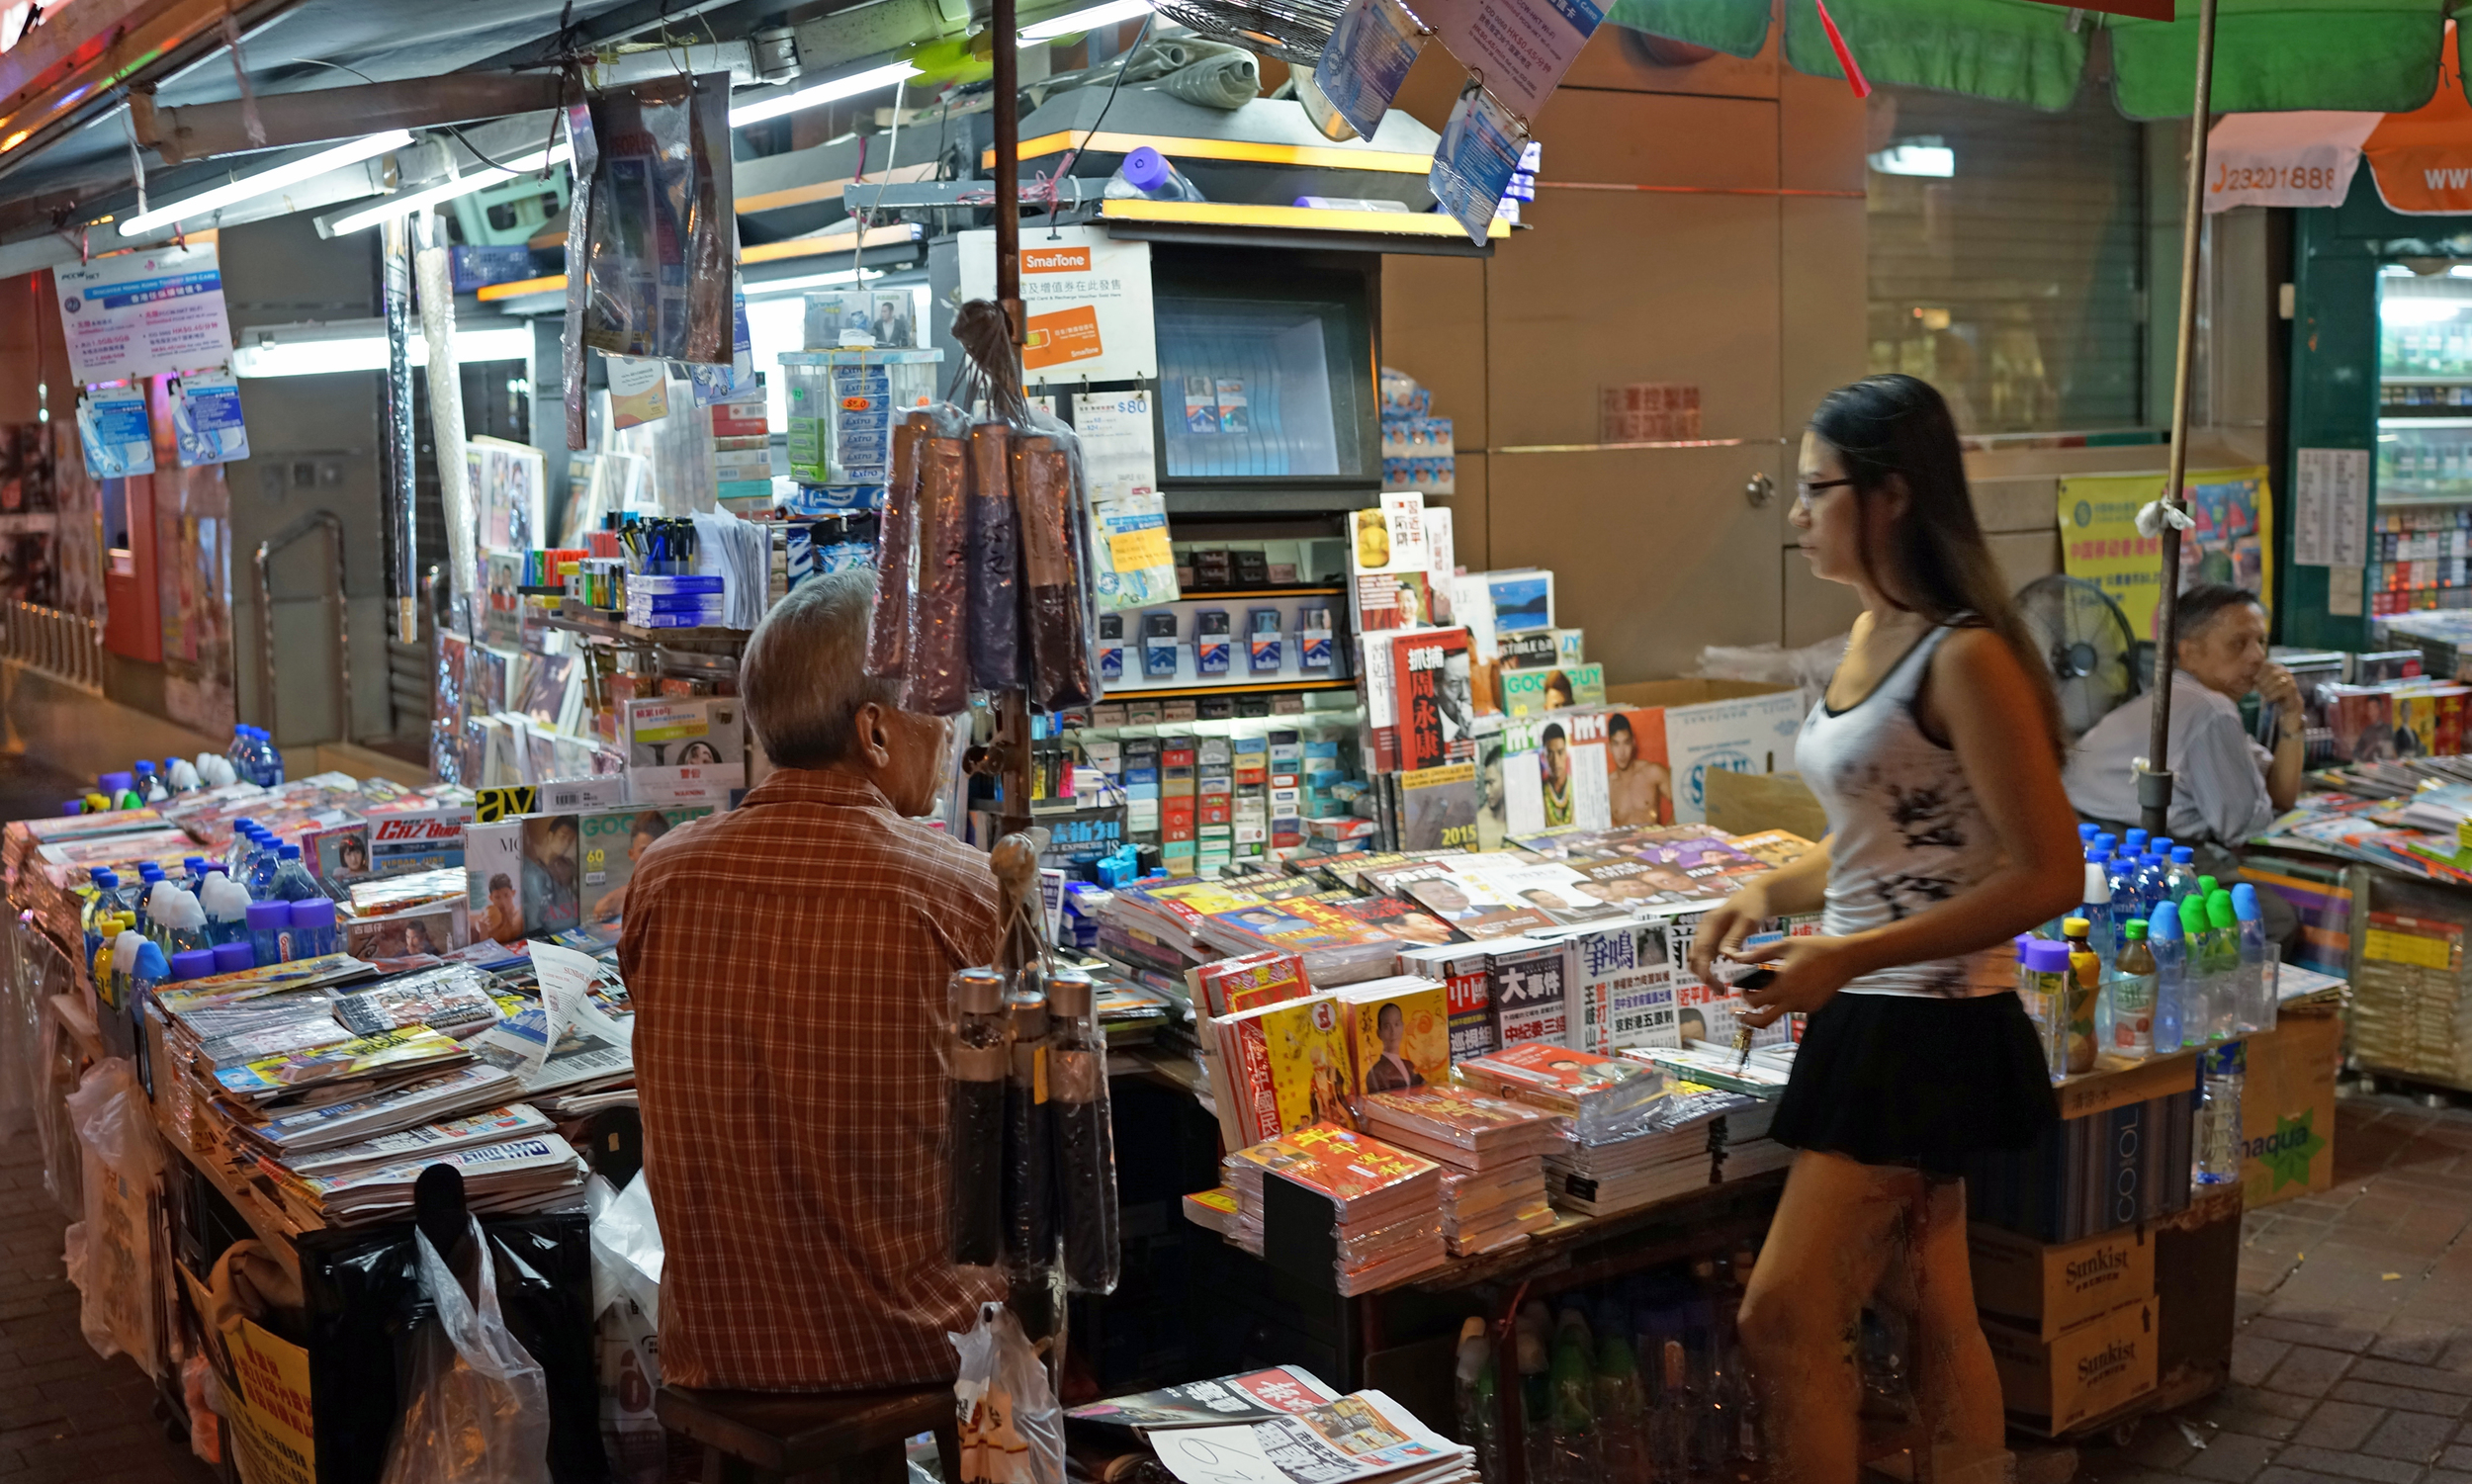 A typical newspaper stall - the old bloke is probably granddad and the young lady his grand daughter, they are sat there probably 350 days a year, 15 hours a day in all types of weather.